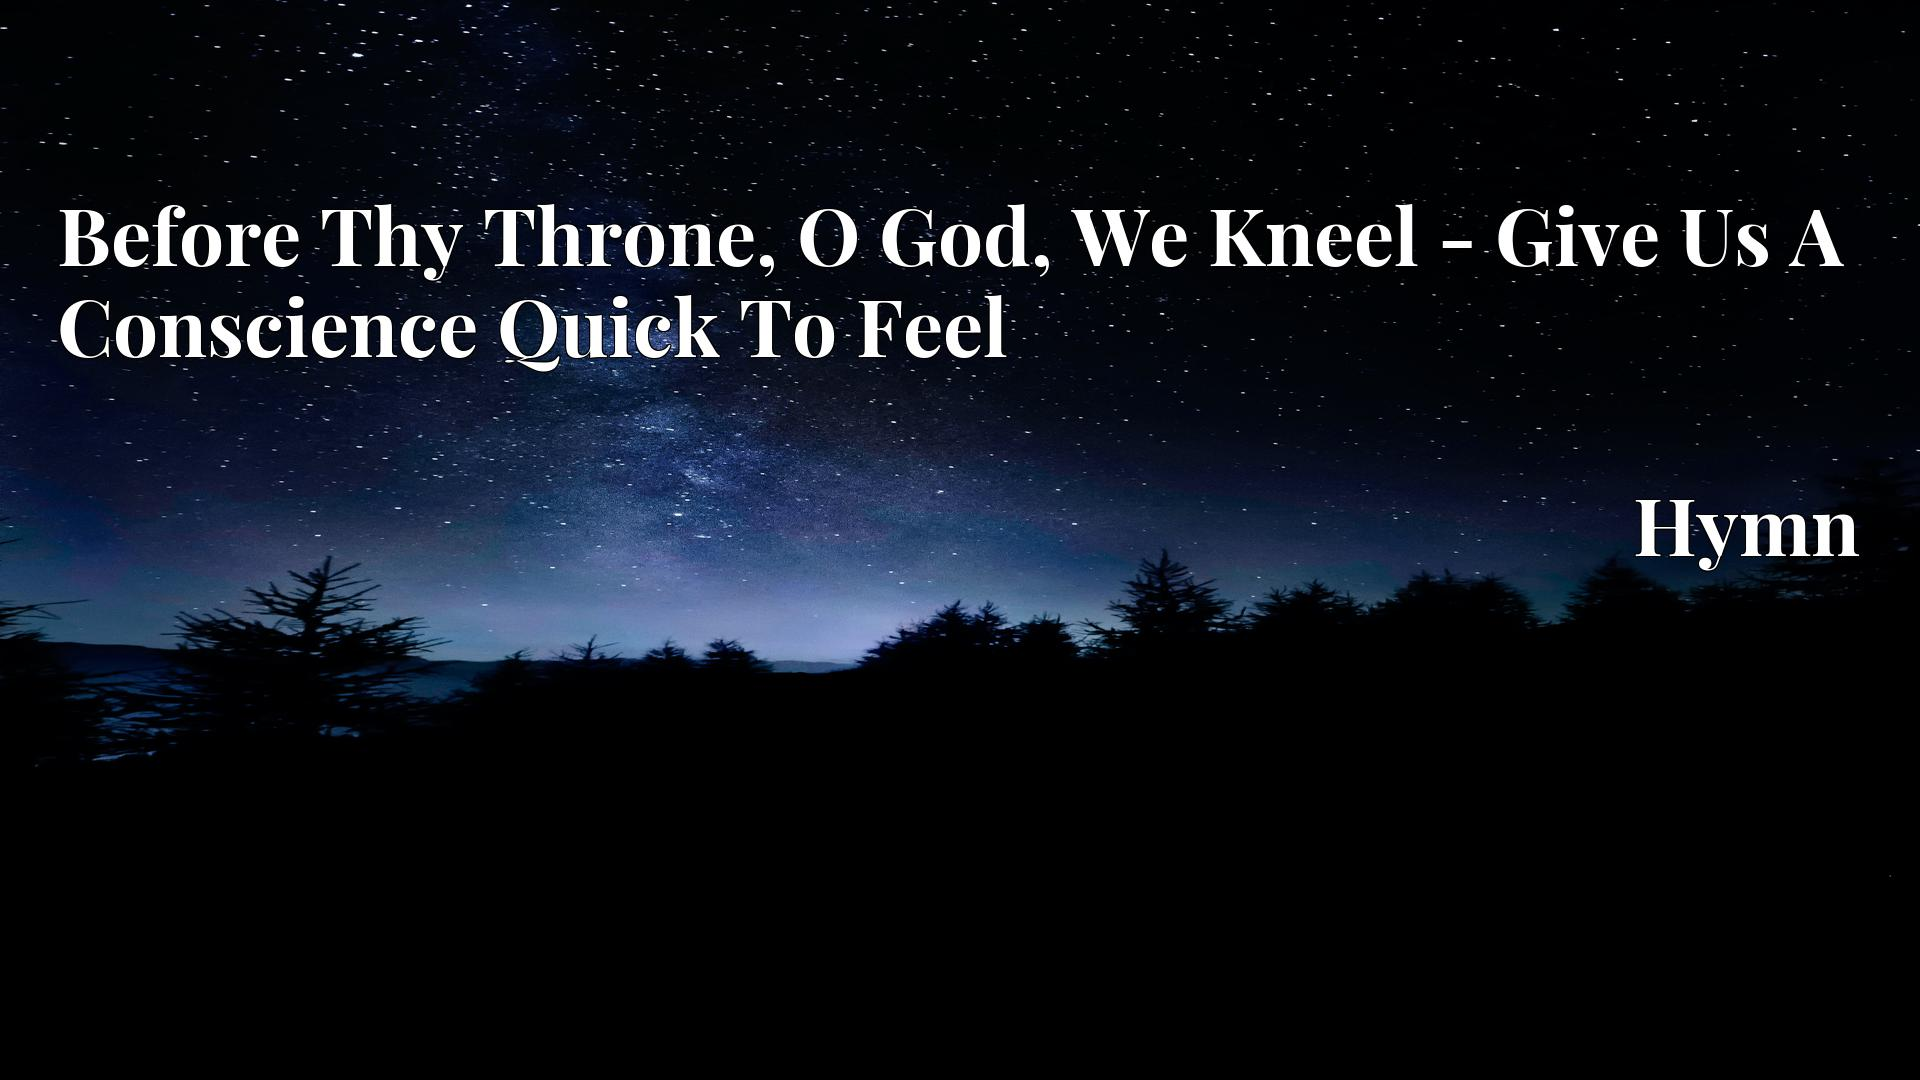 Before Thy Throne, O God, We Kneel - Give Us A Conscience Quick To Feel Hymn